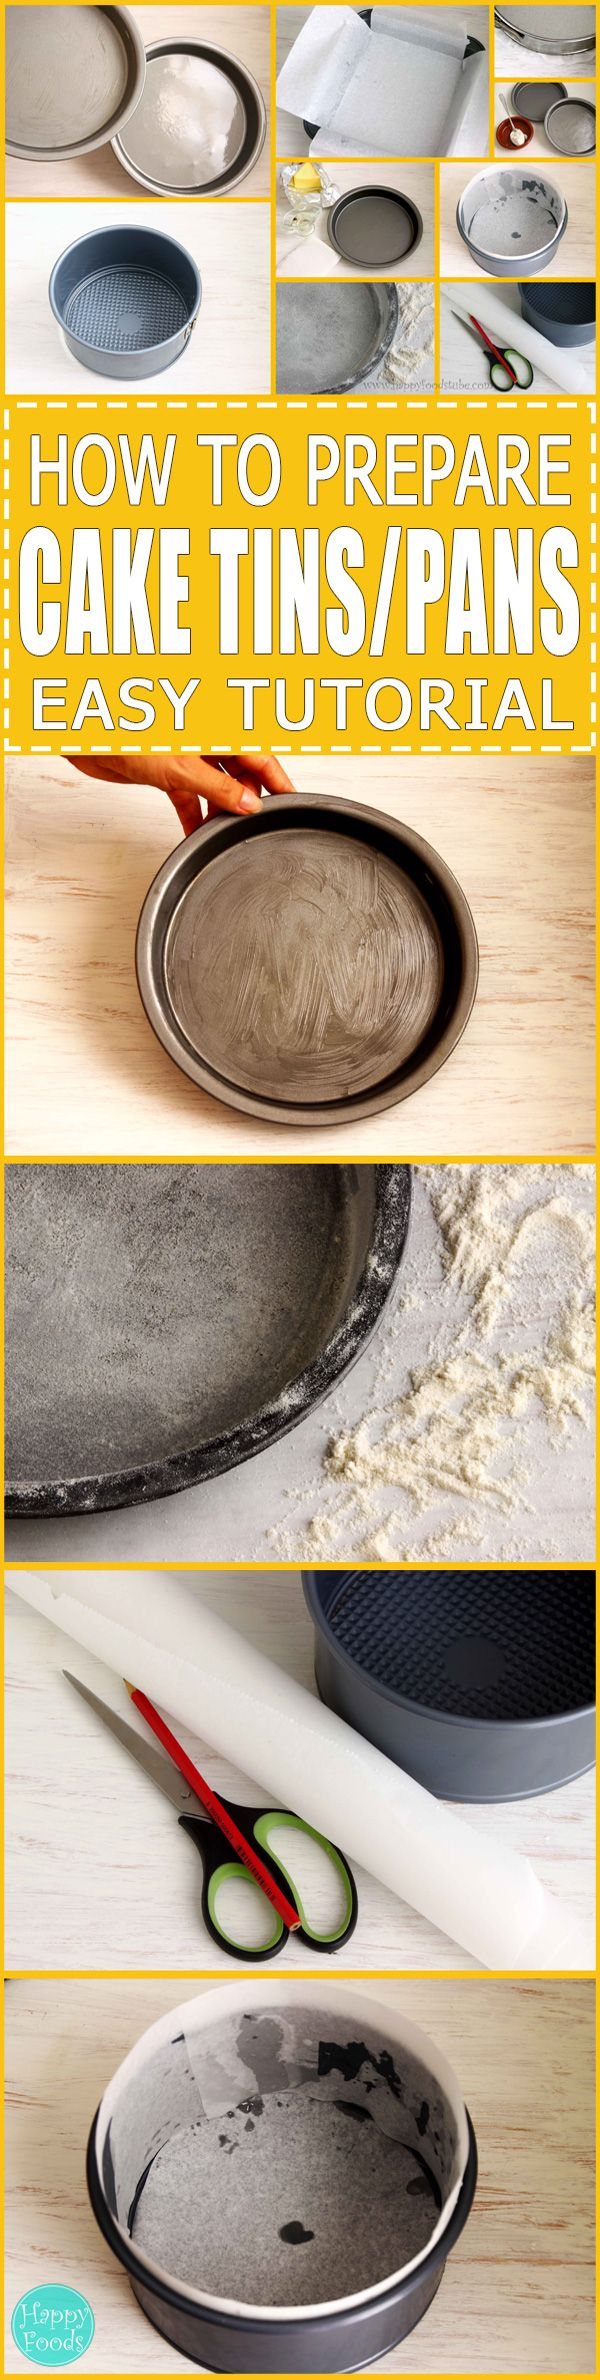 How to Prepare Cake Tins - Quick tutorial how to prepare your cake tins/pans before baking. 3 different ways! | happyfoodstube.com